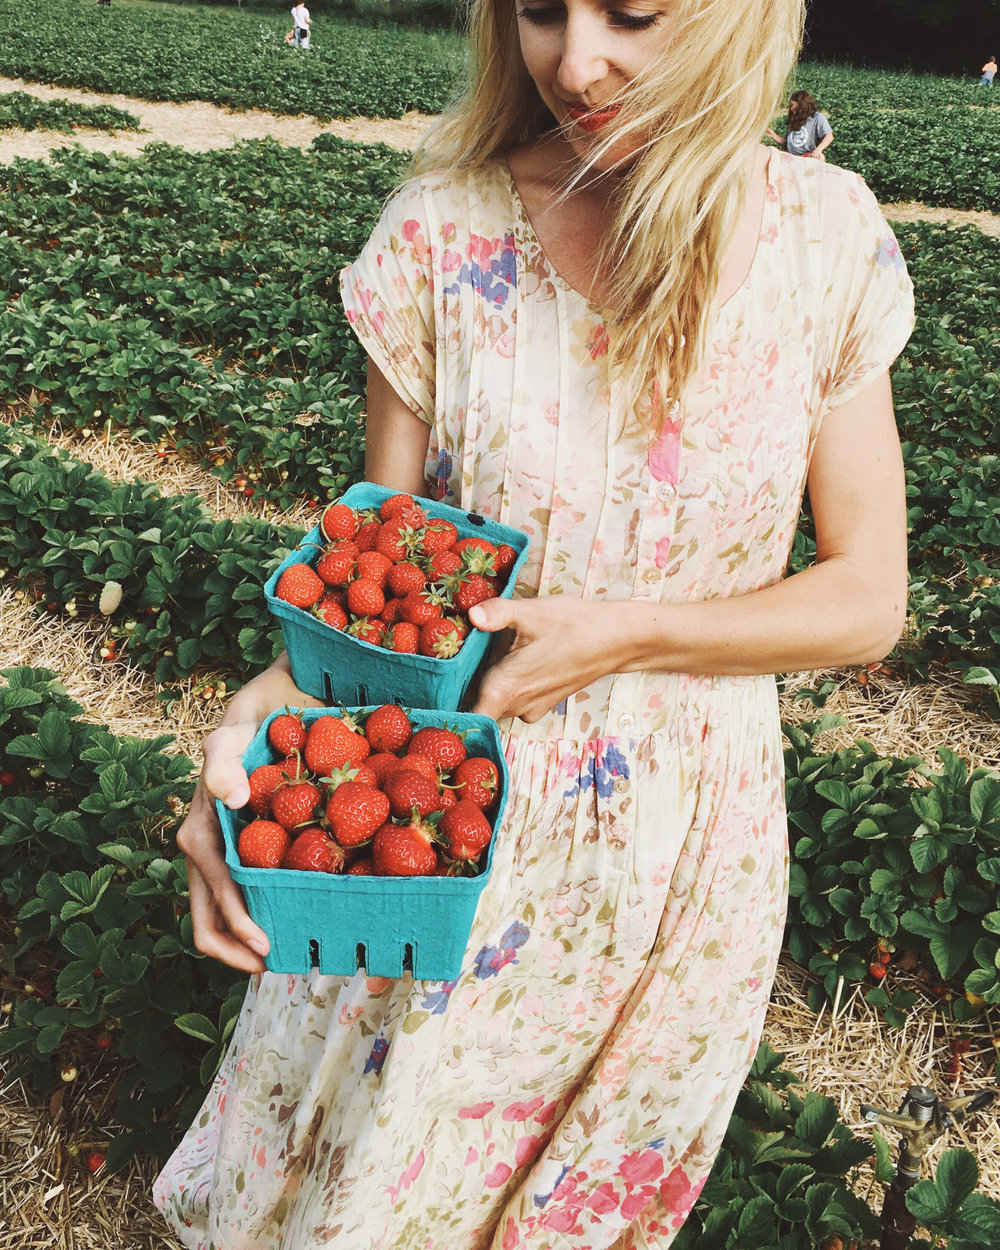 My friend Keiko and I traveled through Maine by car earlier this year. We stopped to pick strawberries which made for a lovely little treat once we finally arrived at our destination.